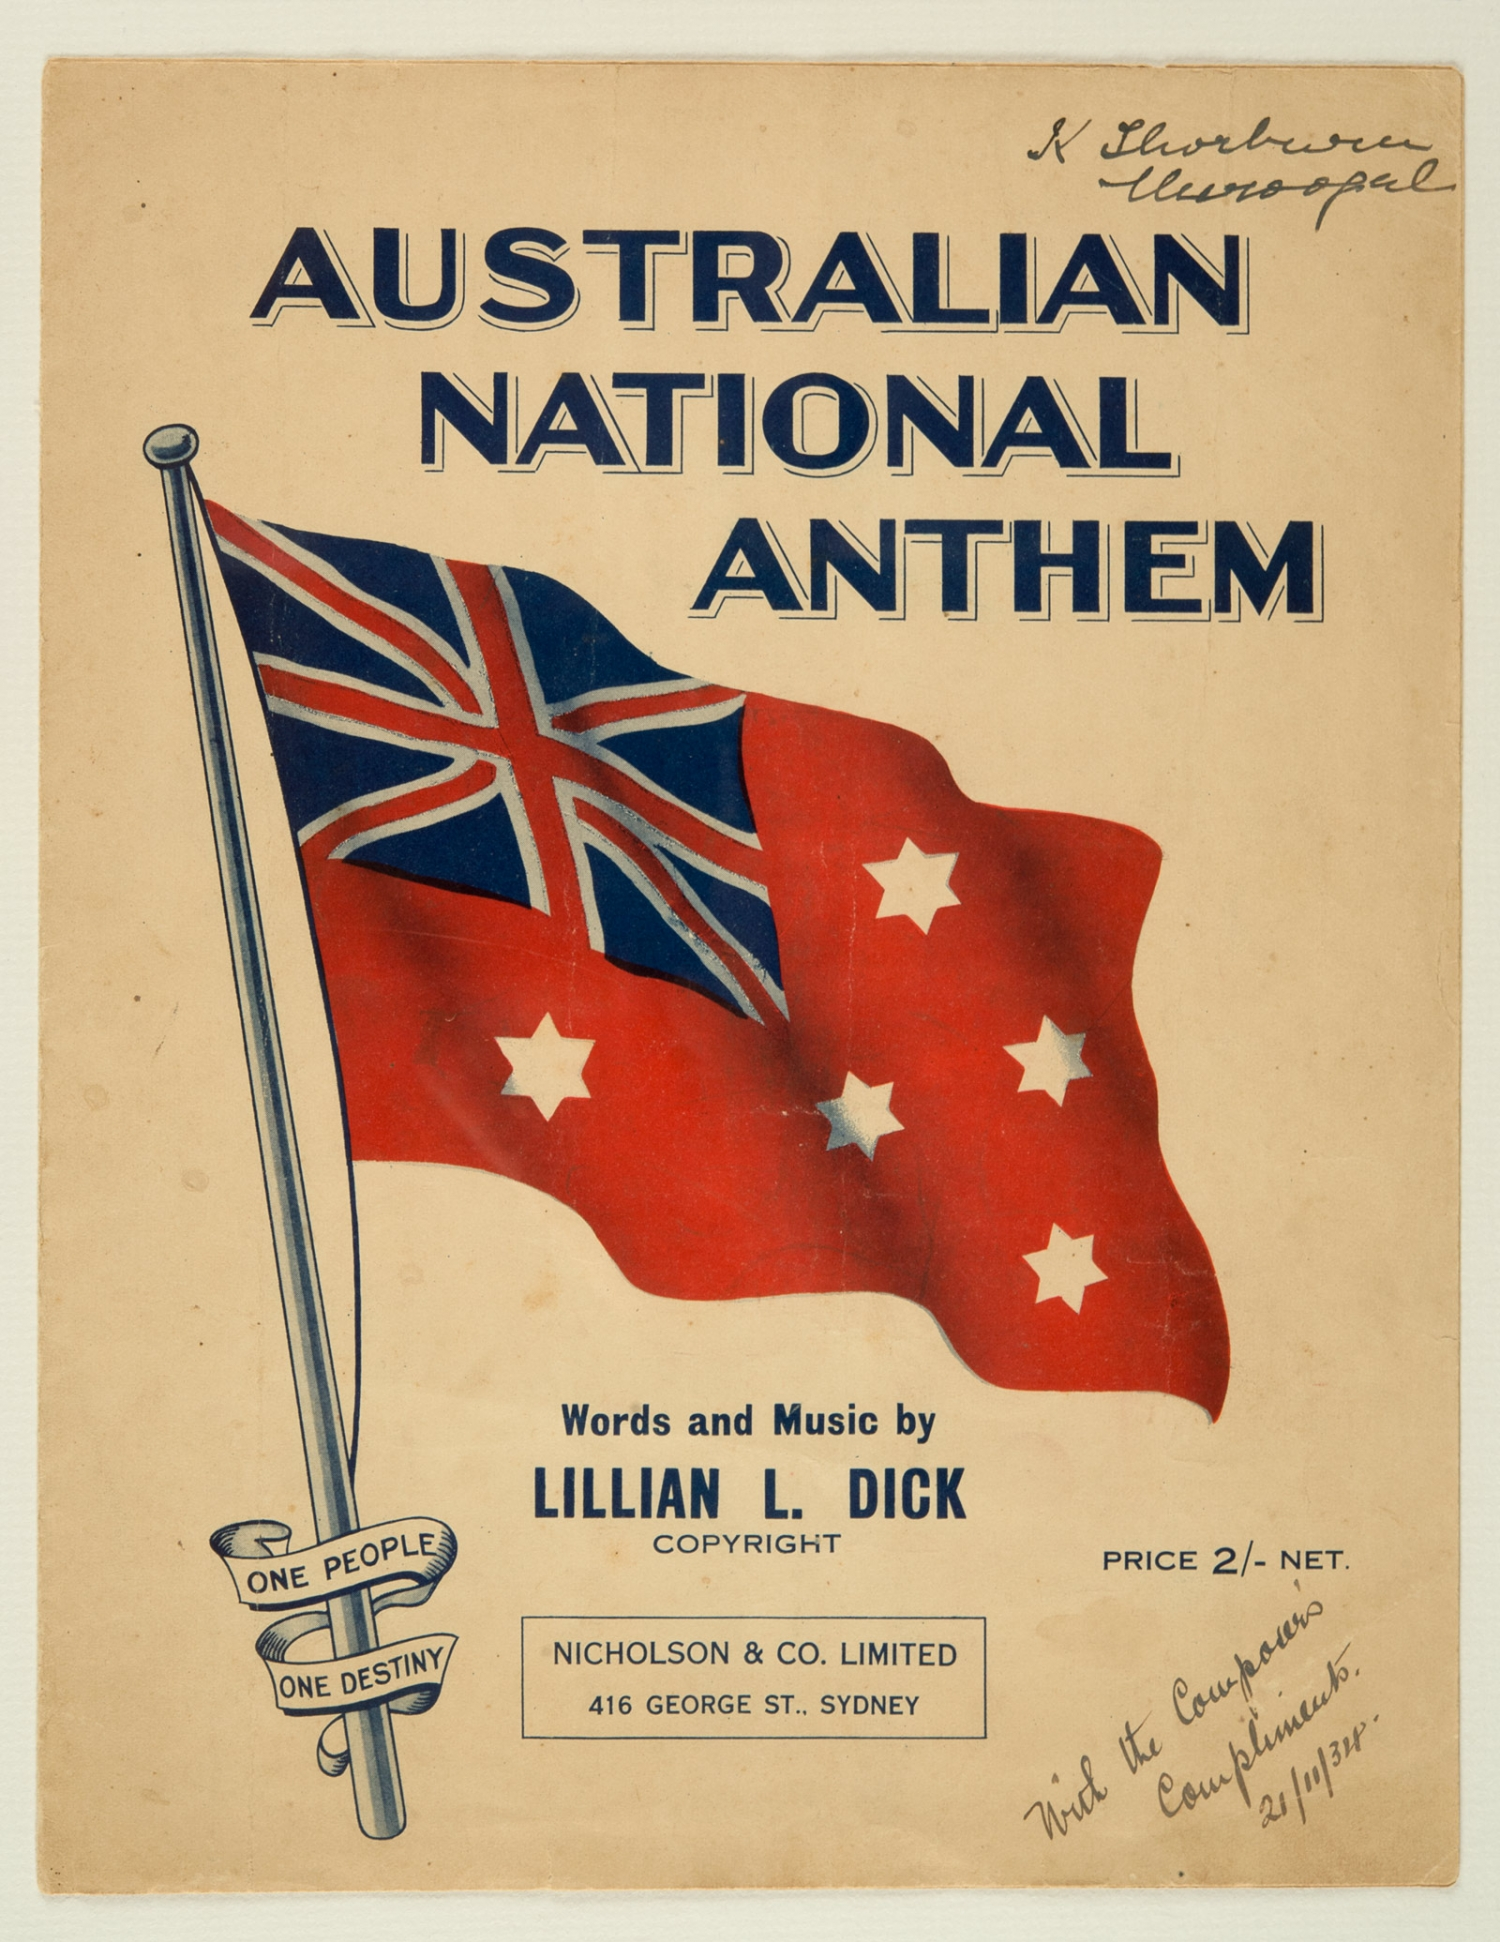 Front cover of sheet music,' Australian National Anthem', words and music by Lillian L. Dick, published 1934